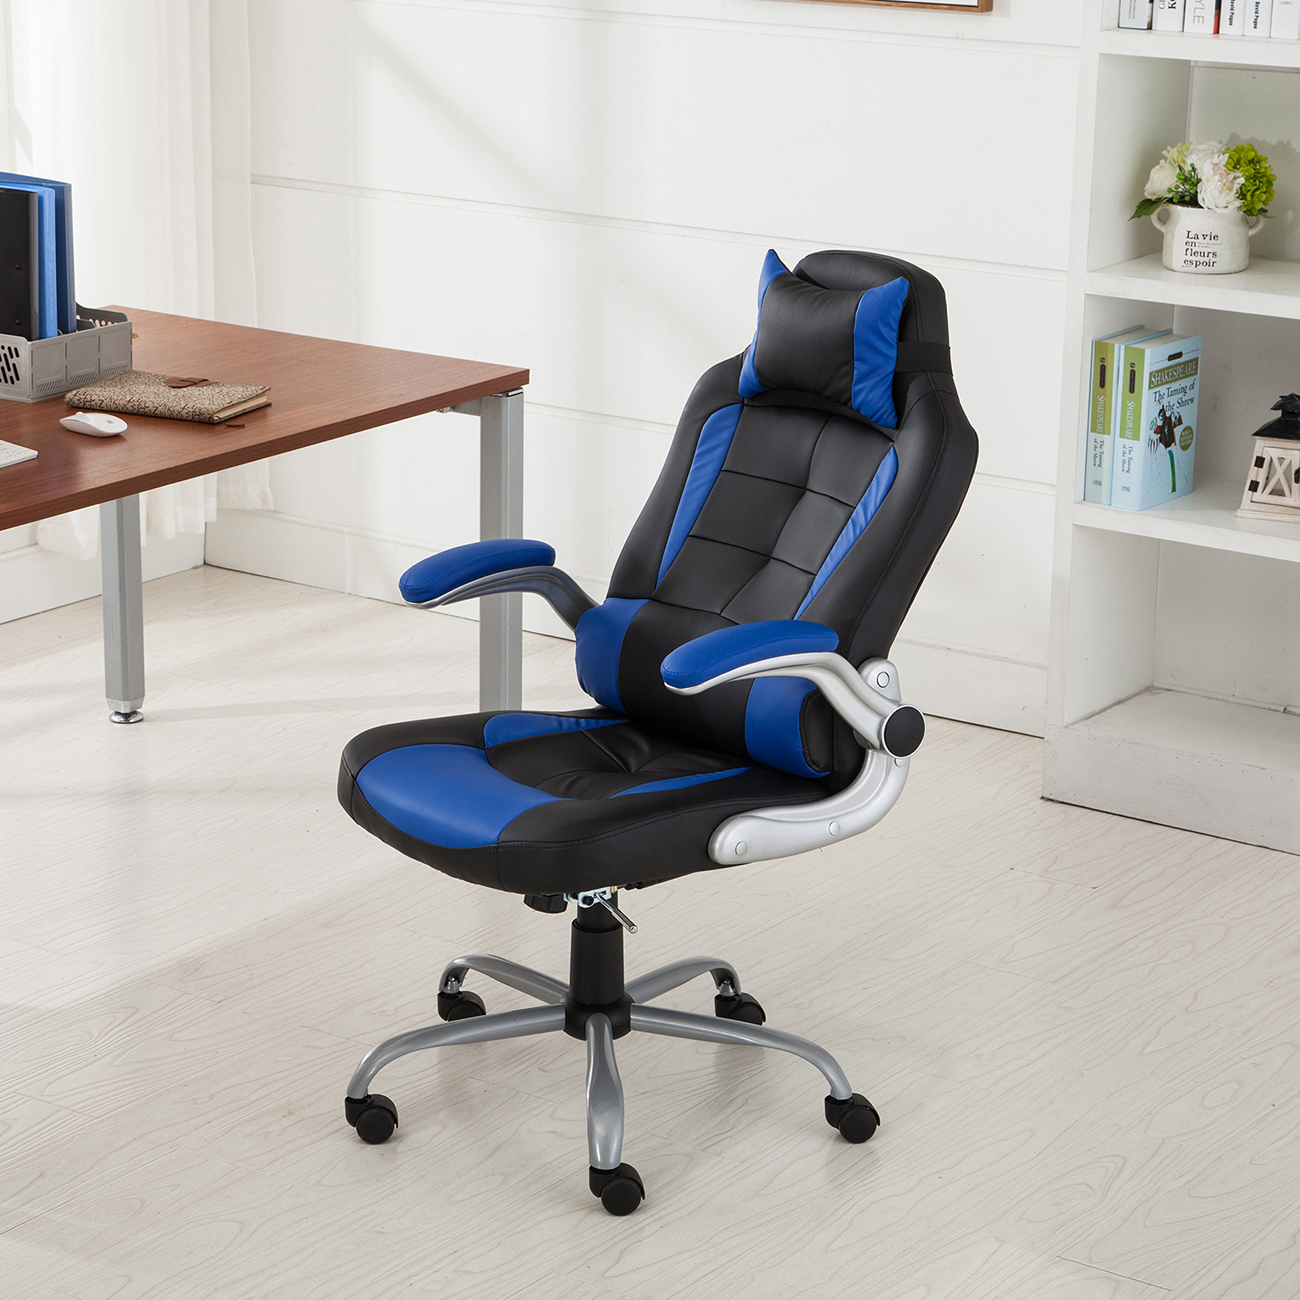 Details About Executive Racing Style High Back Reclining Chair Gaming Chairs Office Computer